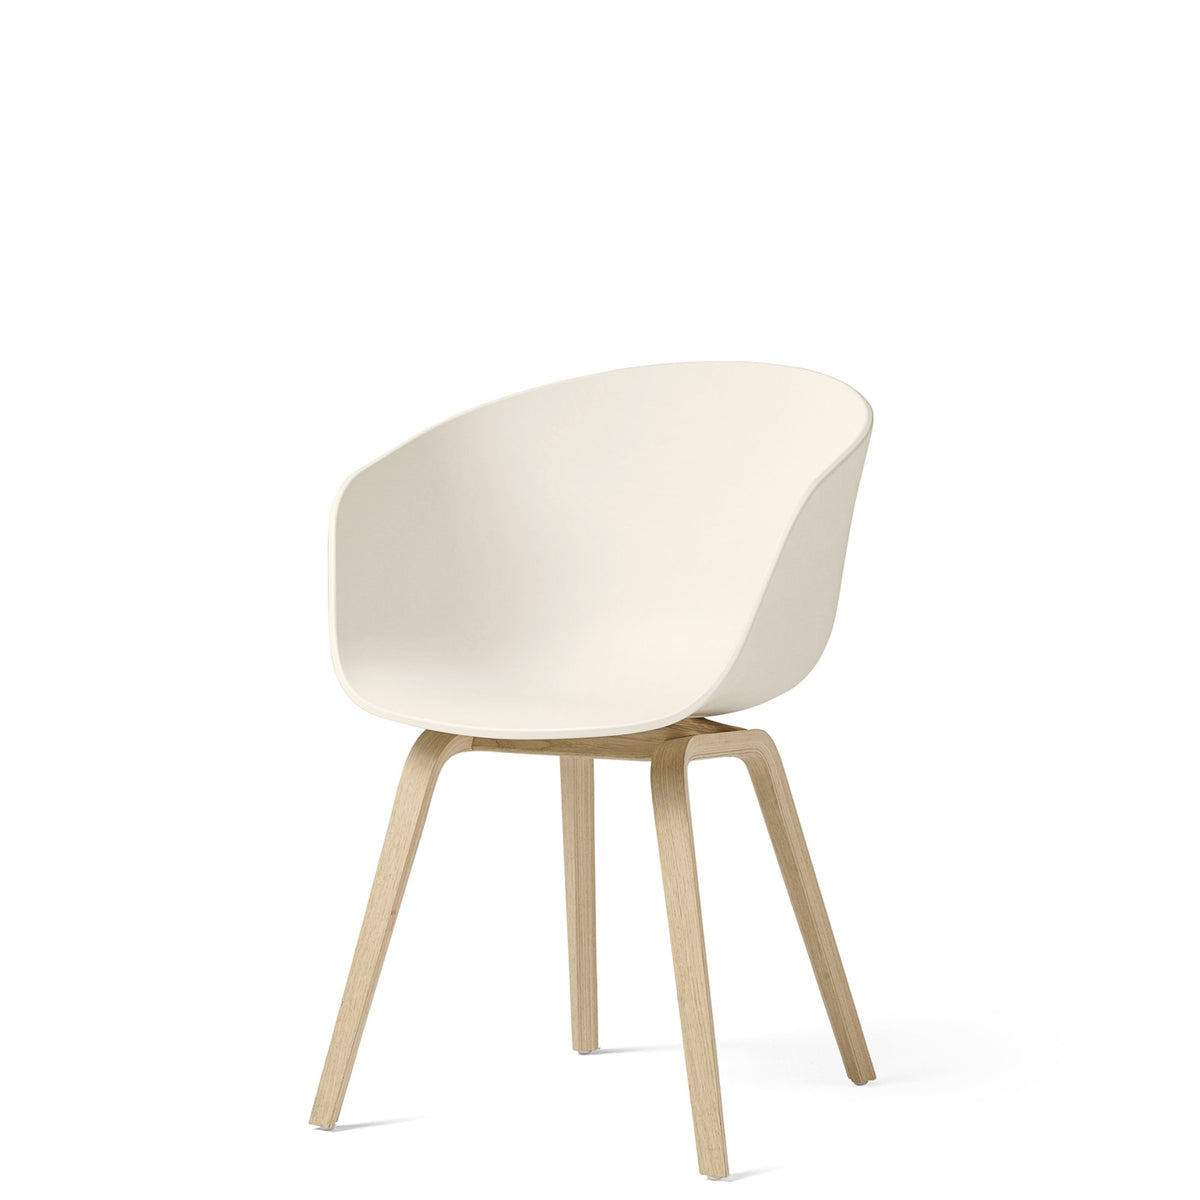 HAY About A Chair AAC22 Cream White with Matt Lacquered Oak Base